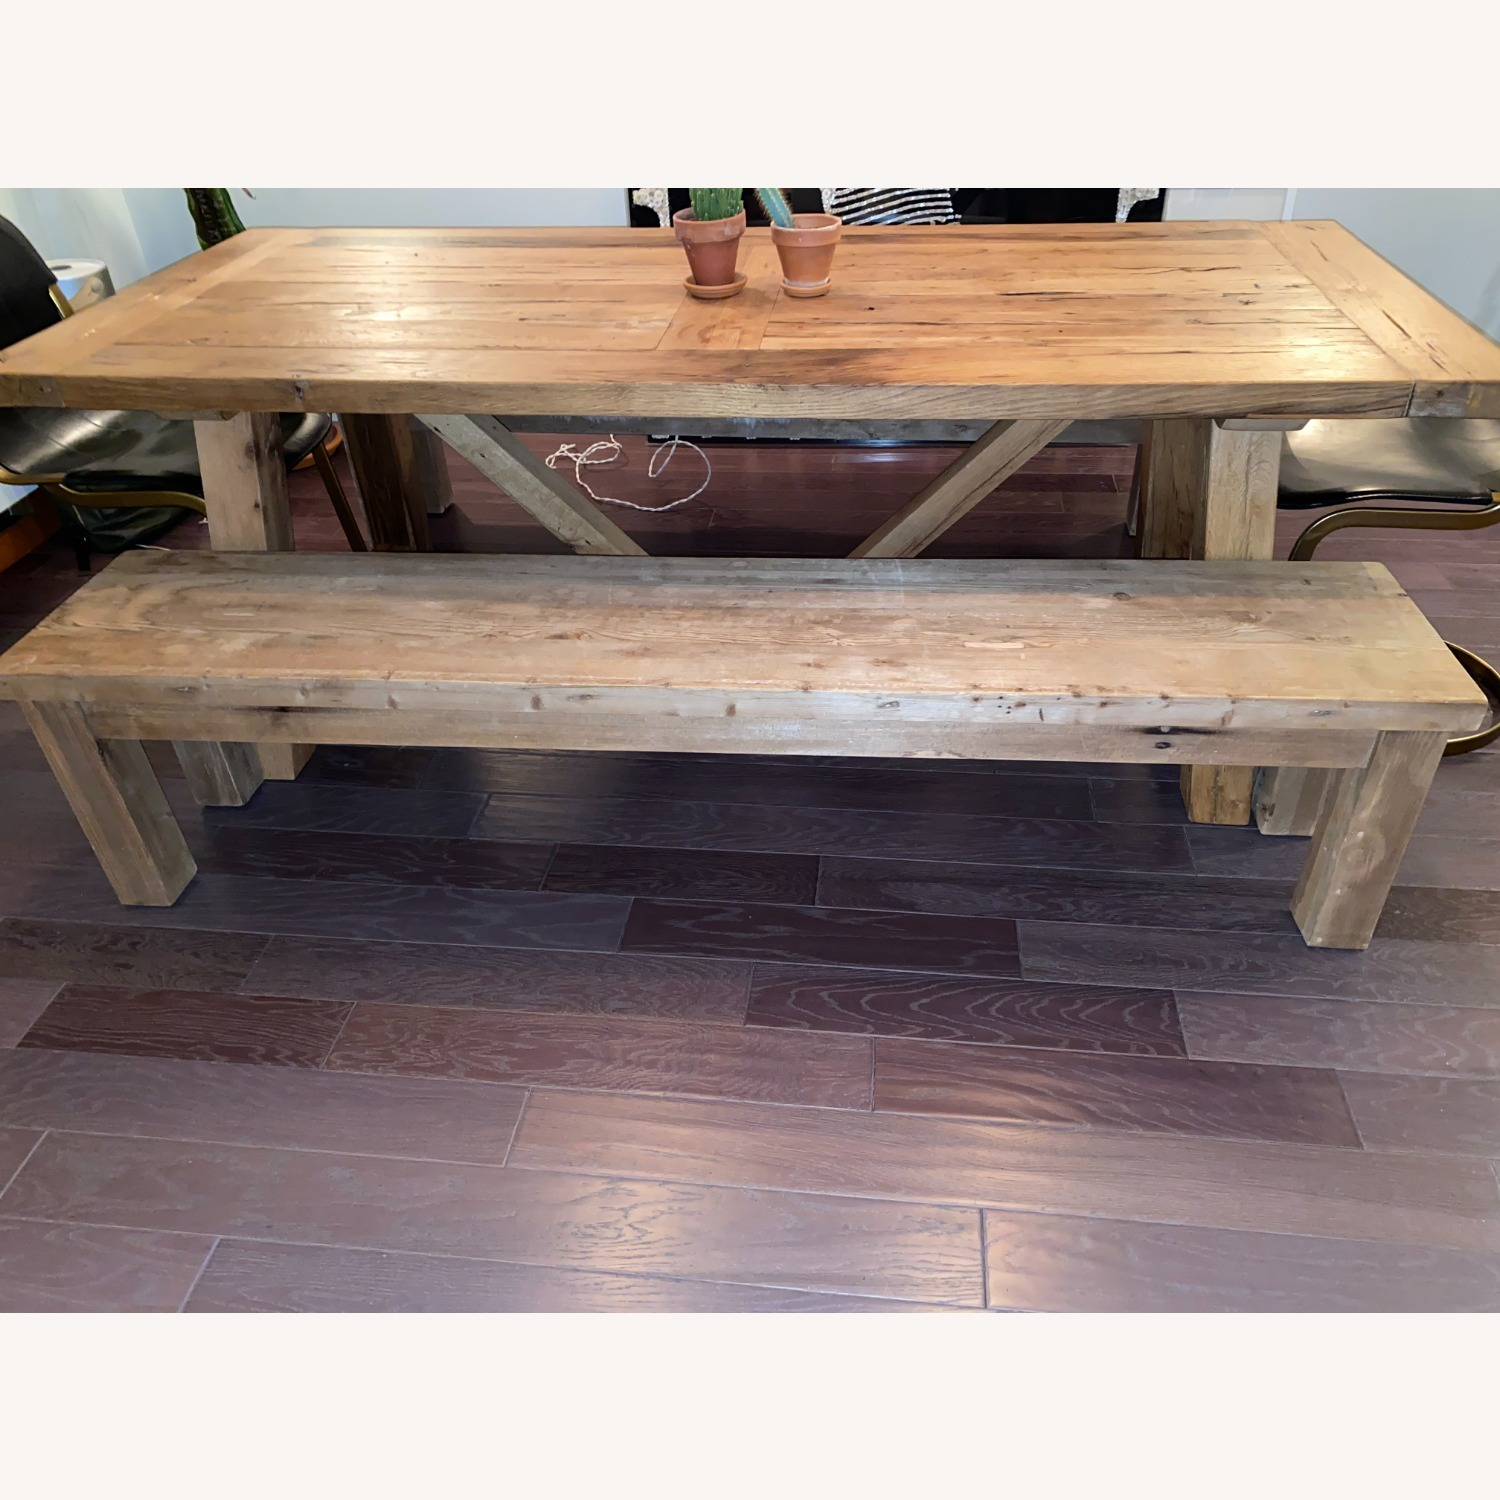 Restoration Hardware Russian Oak Table and Benches - image-2